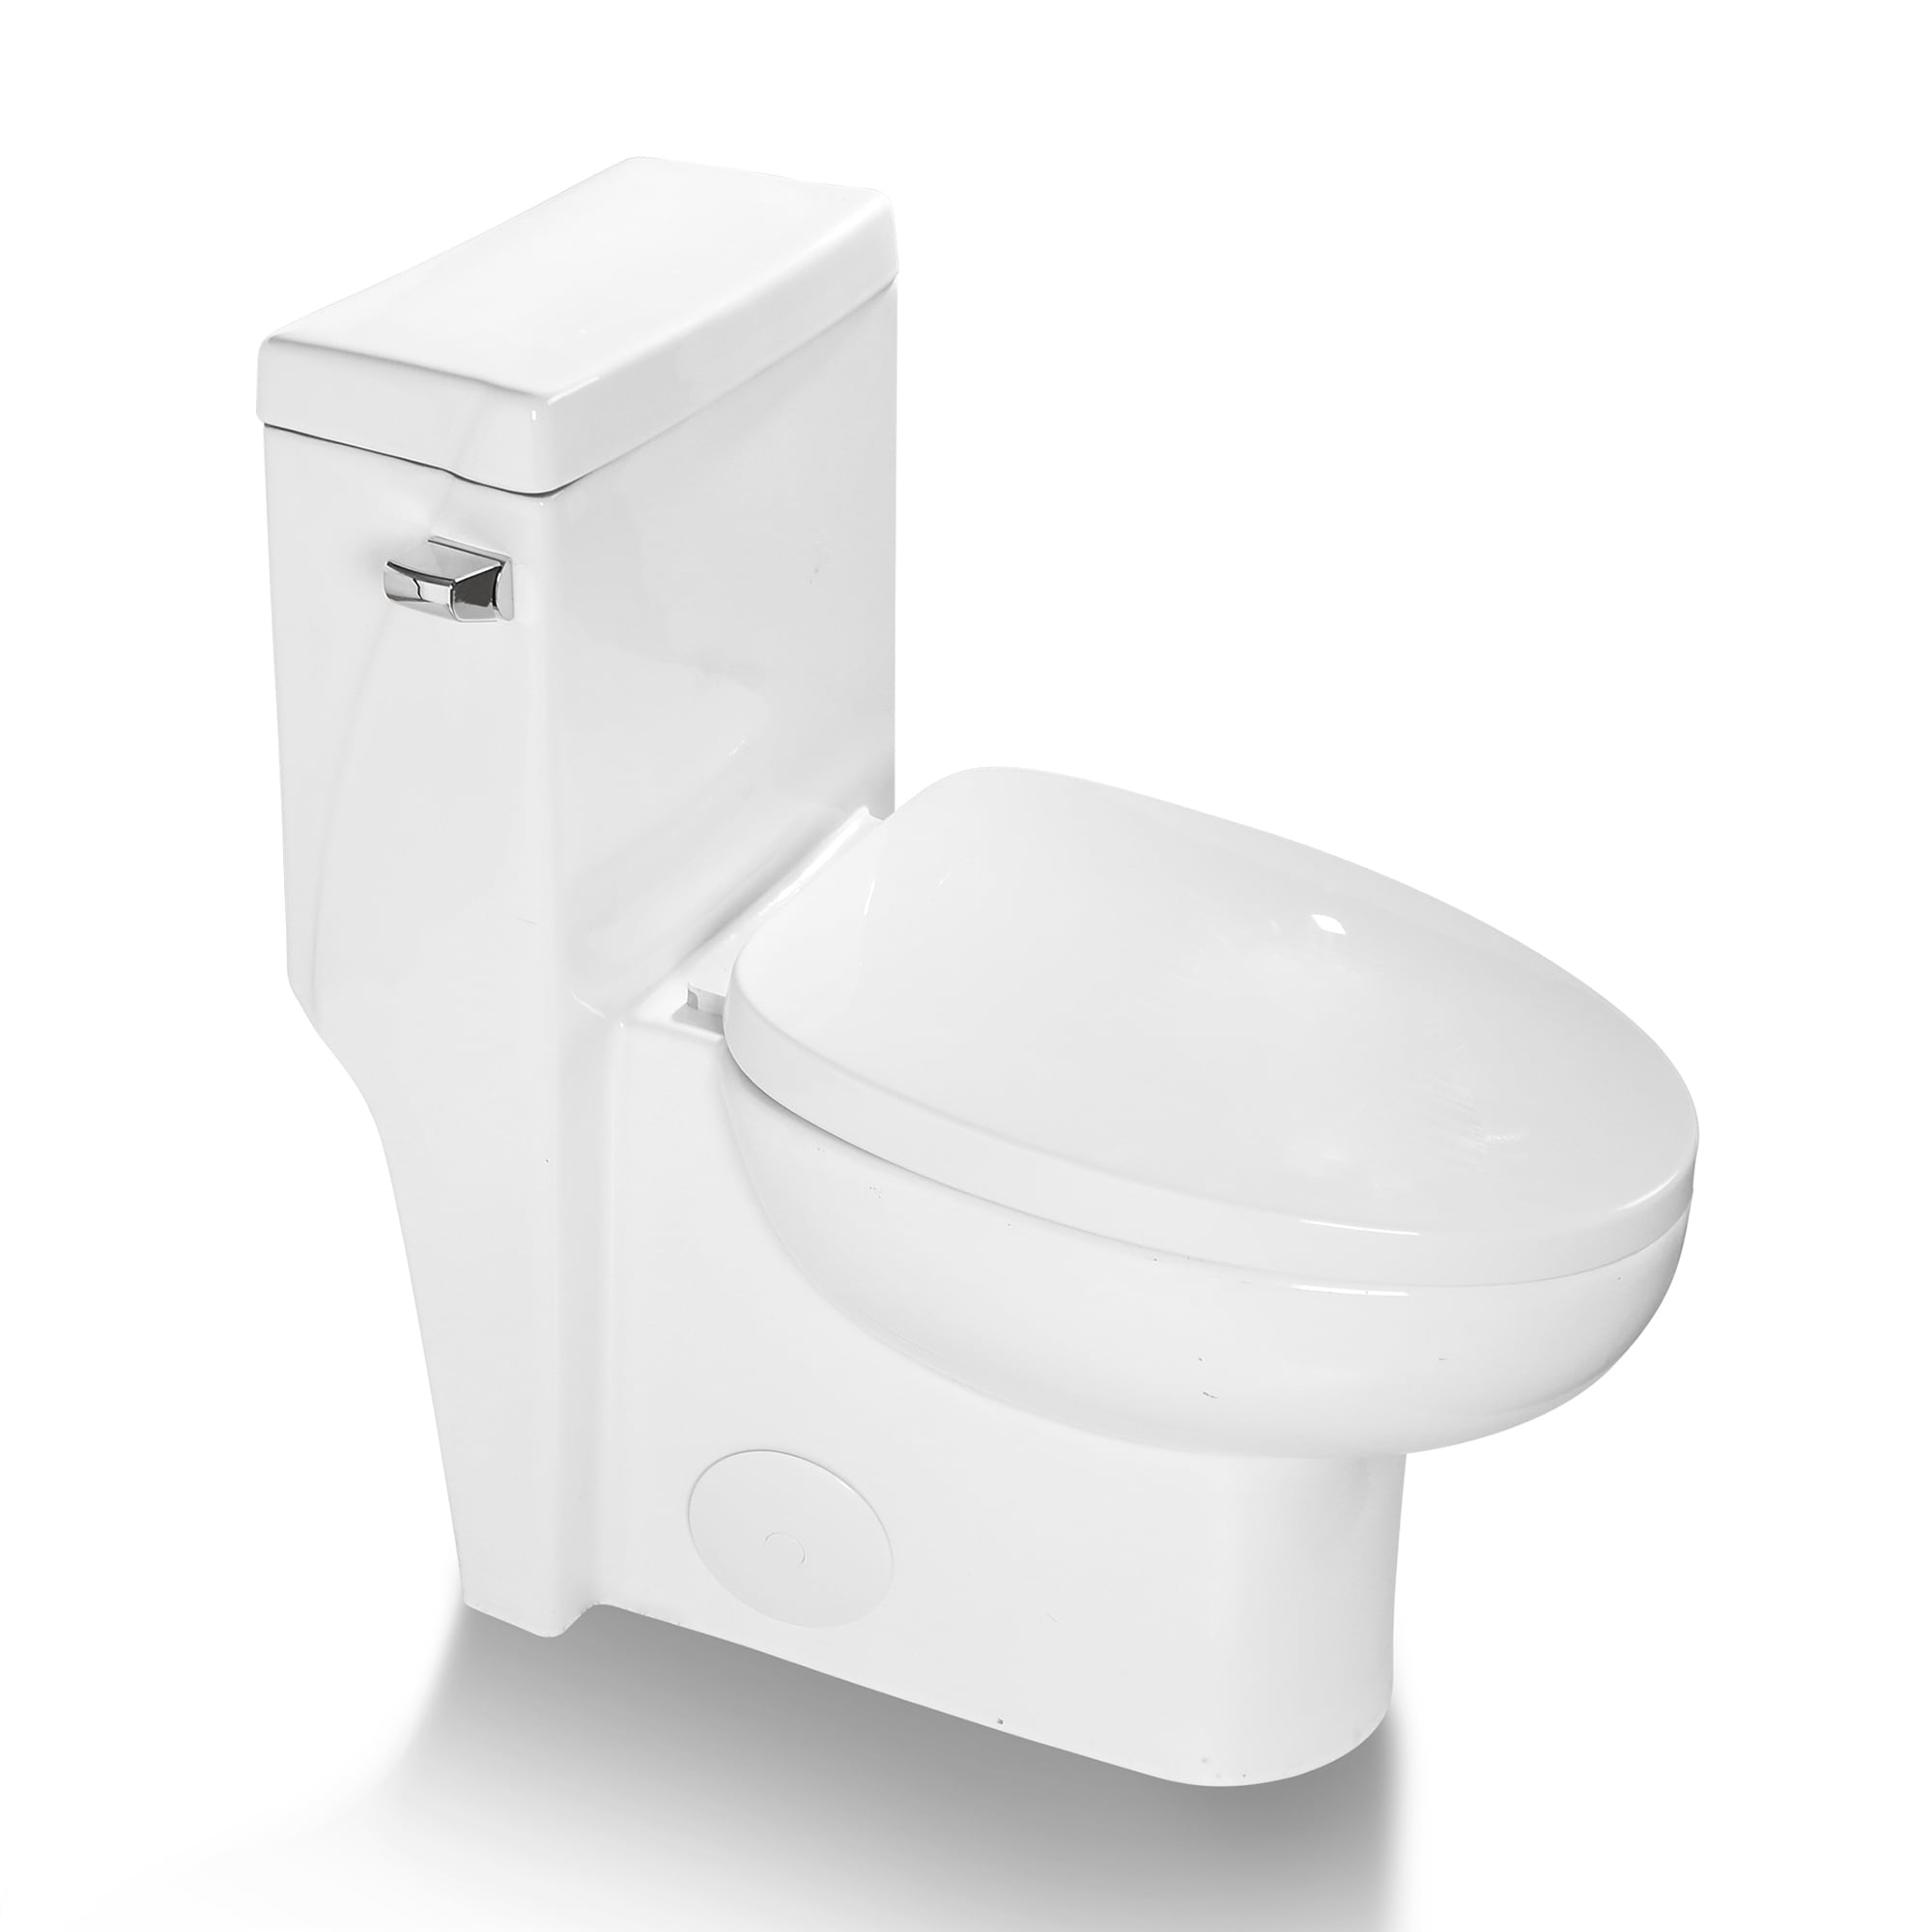 1 28 Gpf Water Efficient Elongated One Piece Toilet Seat Included On Sale Overstock 32523431